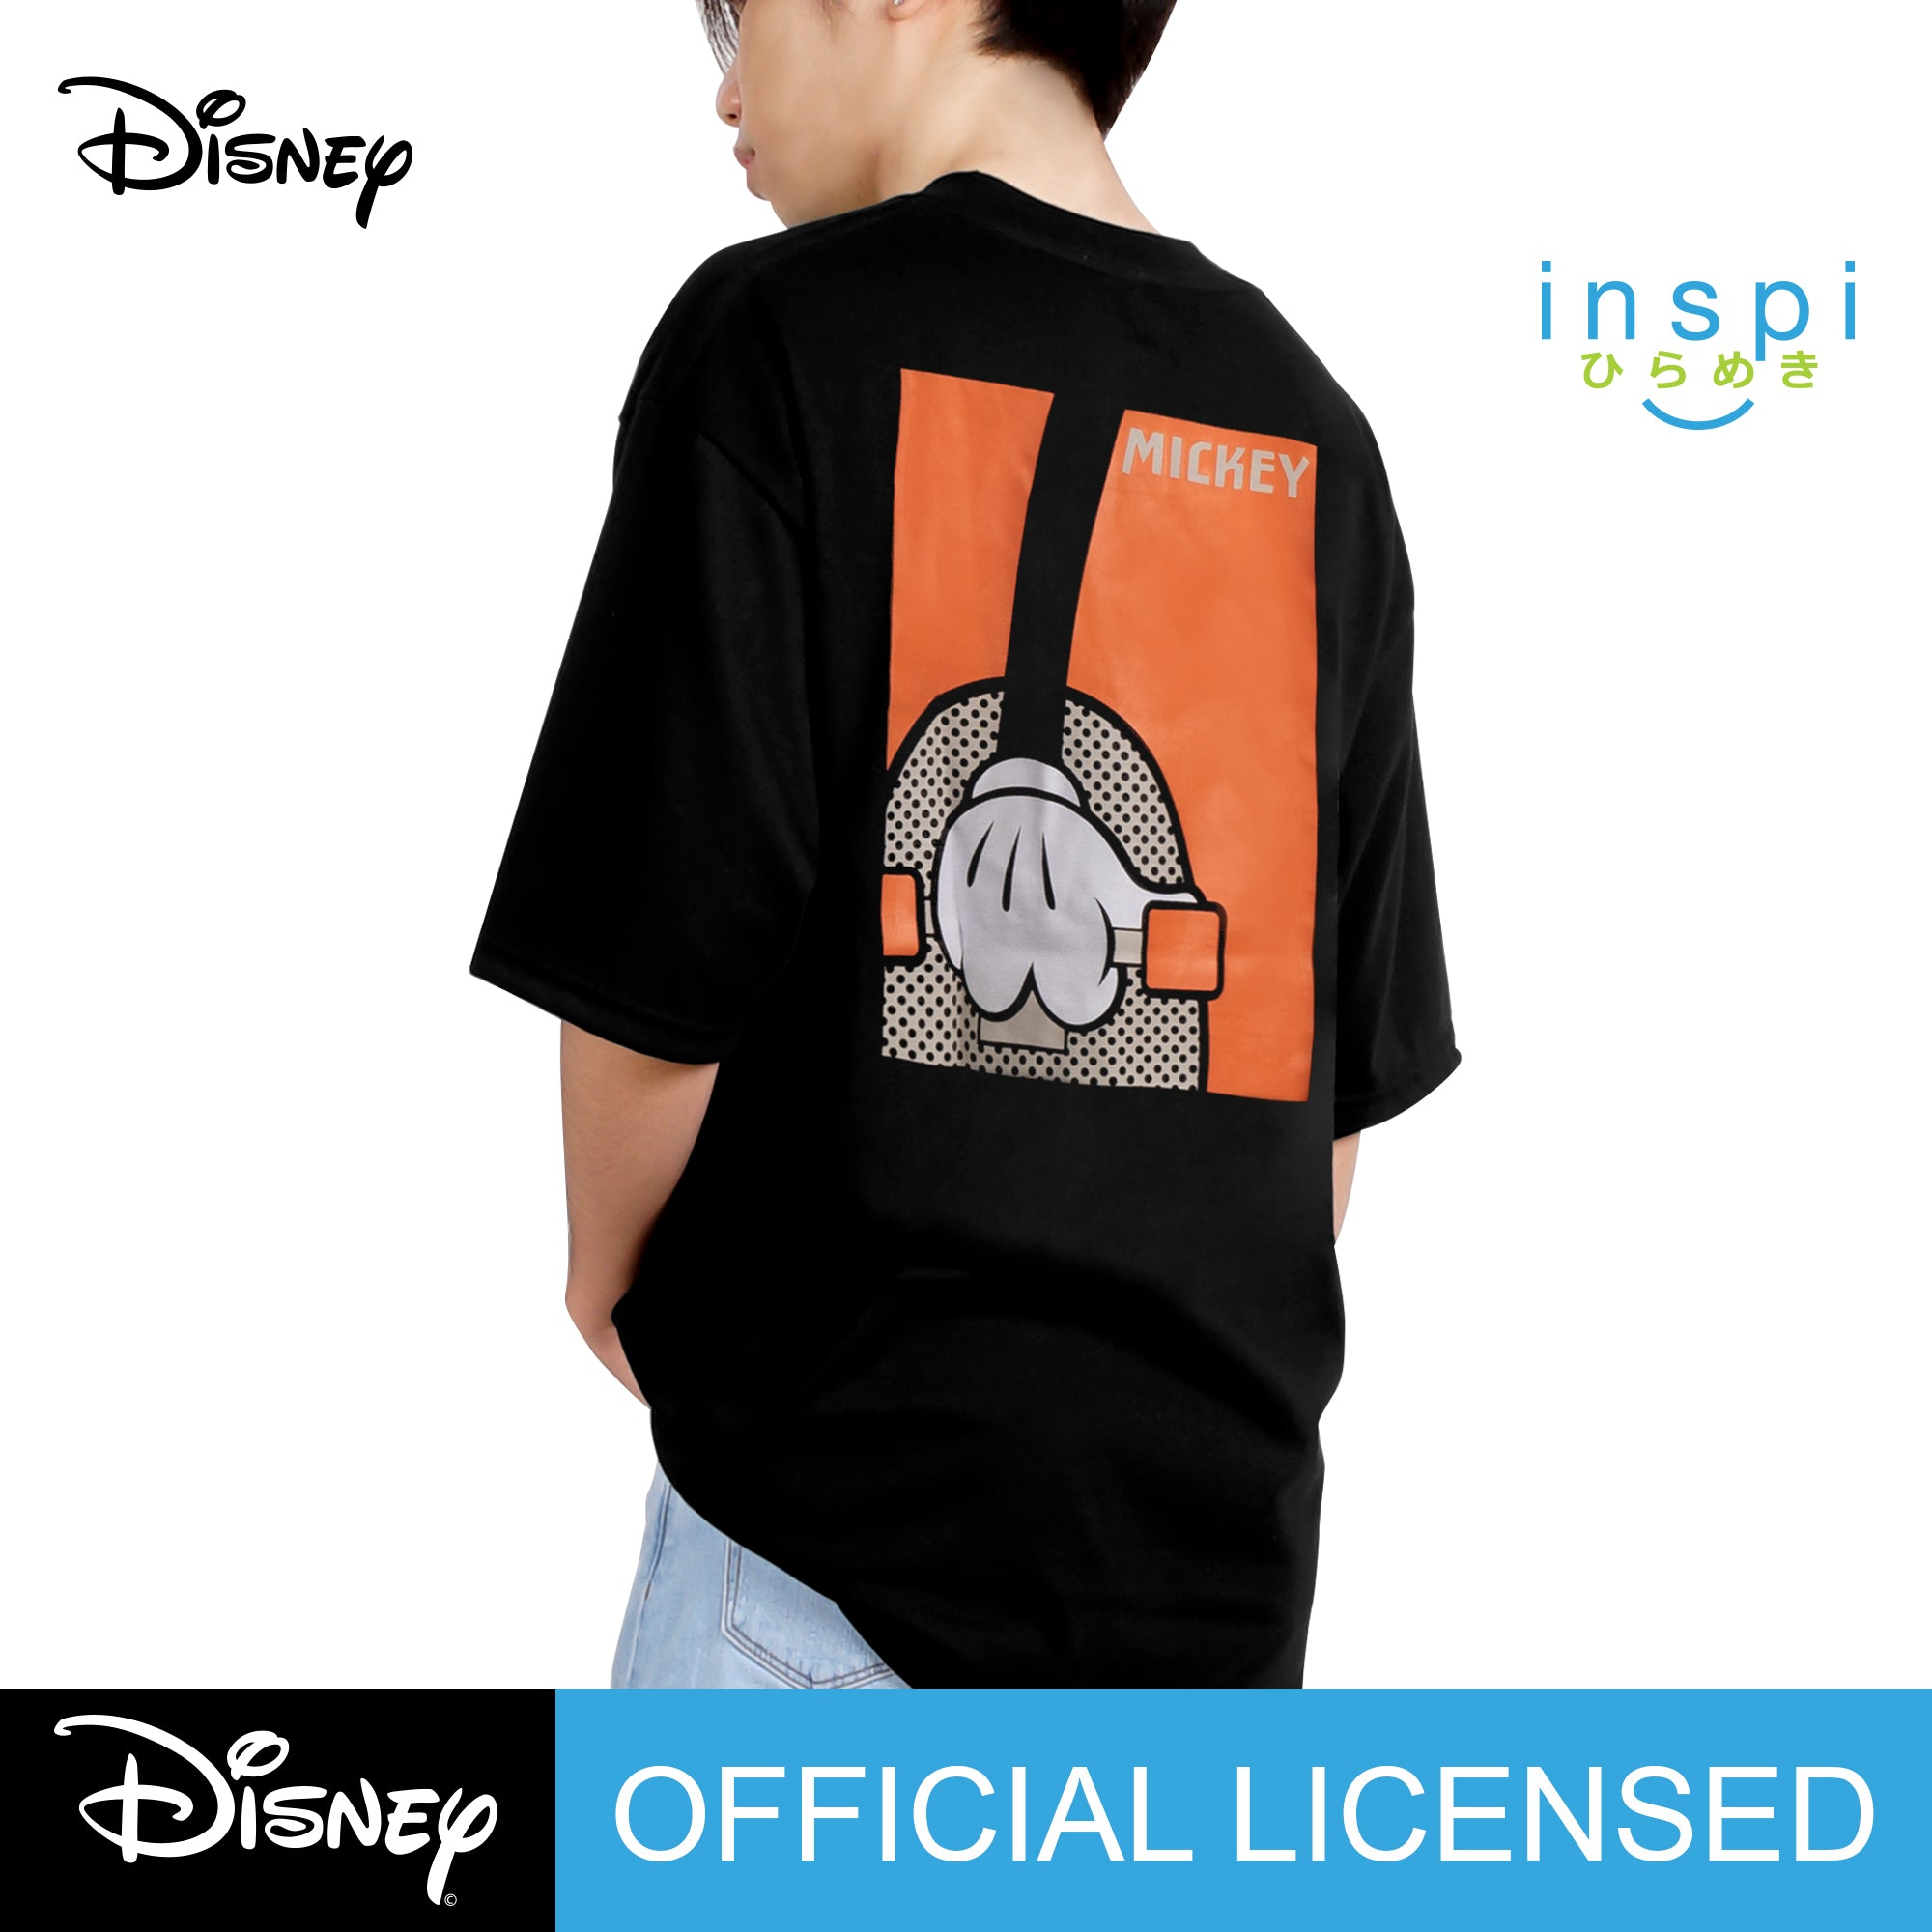 Disney Mickey Mouse Loose Fit Mickey State Graphic Korean Oversized Tshirt in Black Inspi Tee